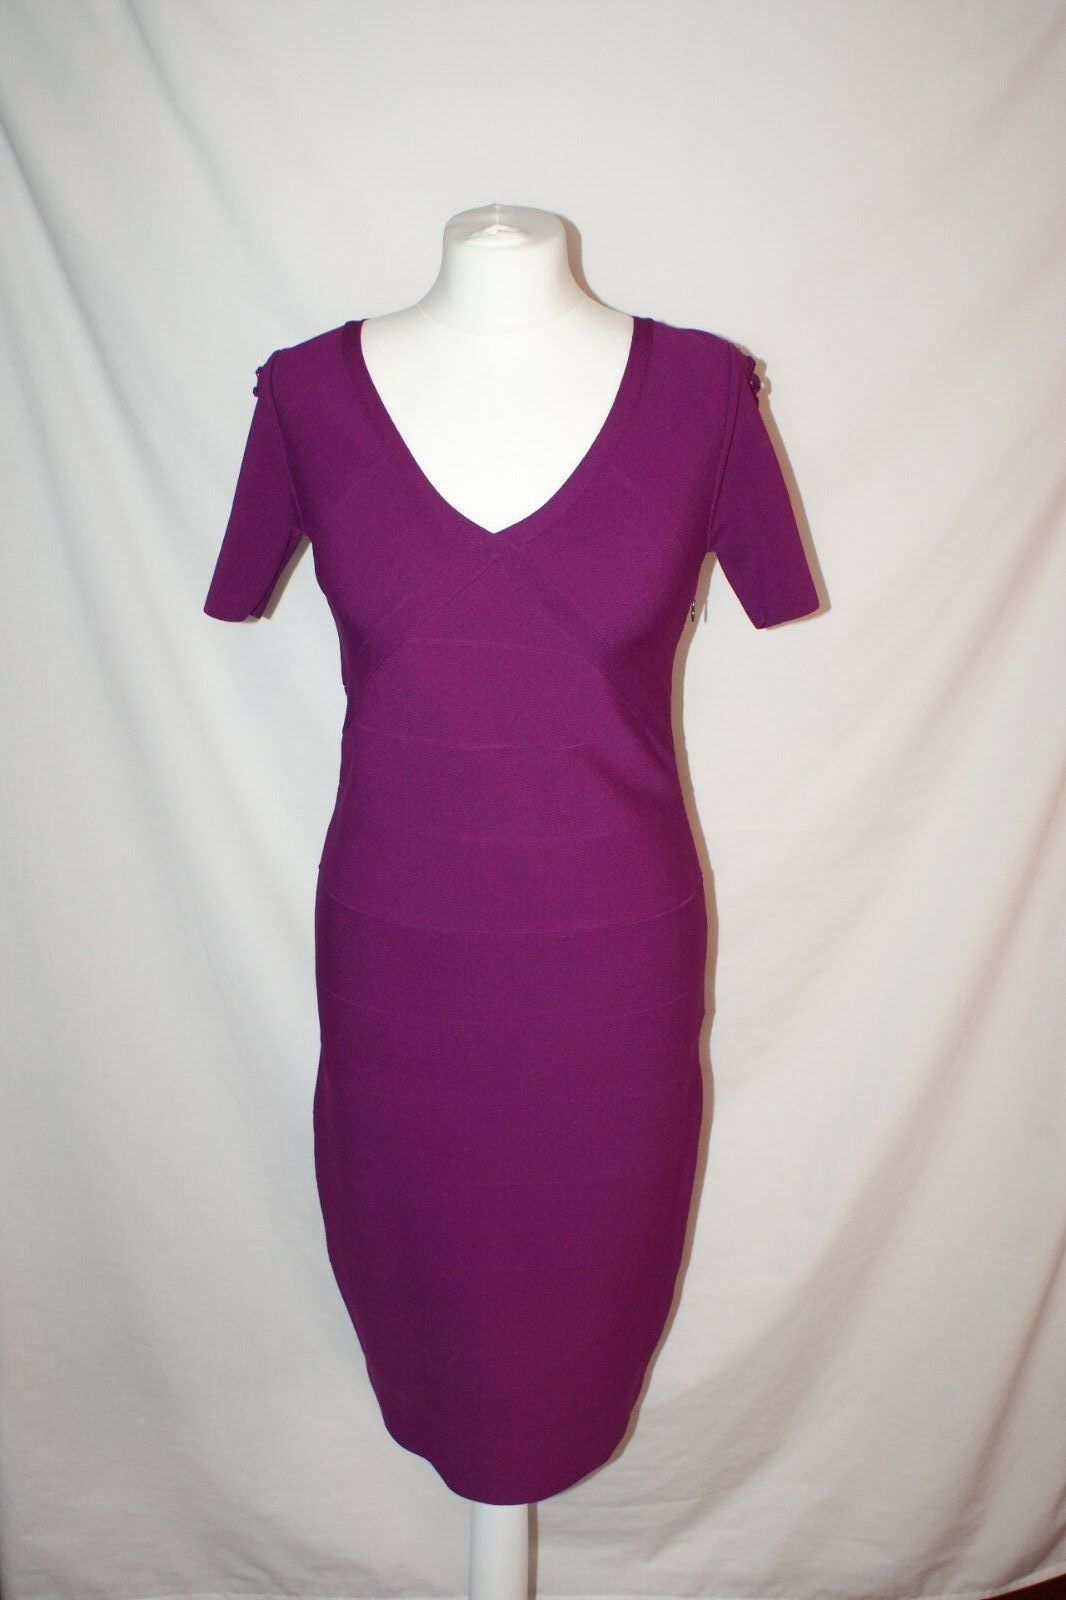 BNWT REISS Rouge Violet Violet Fuchsia Robe Moulante Taille M